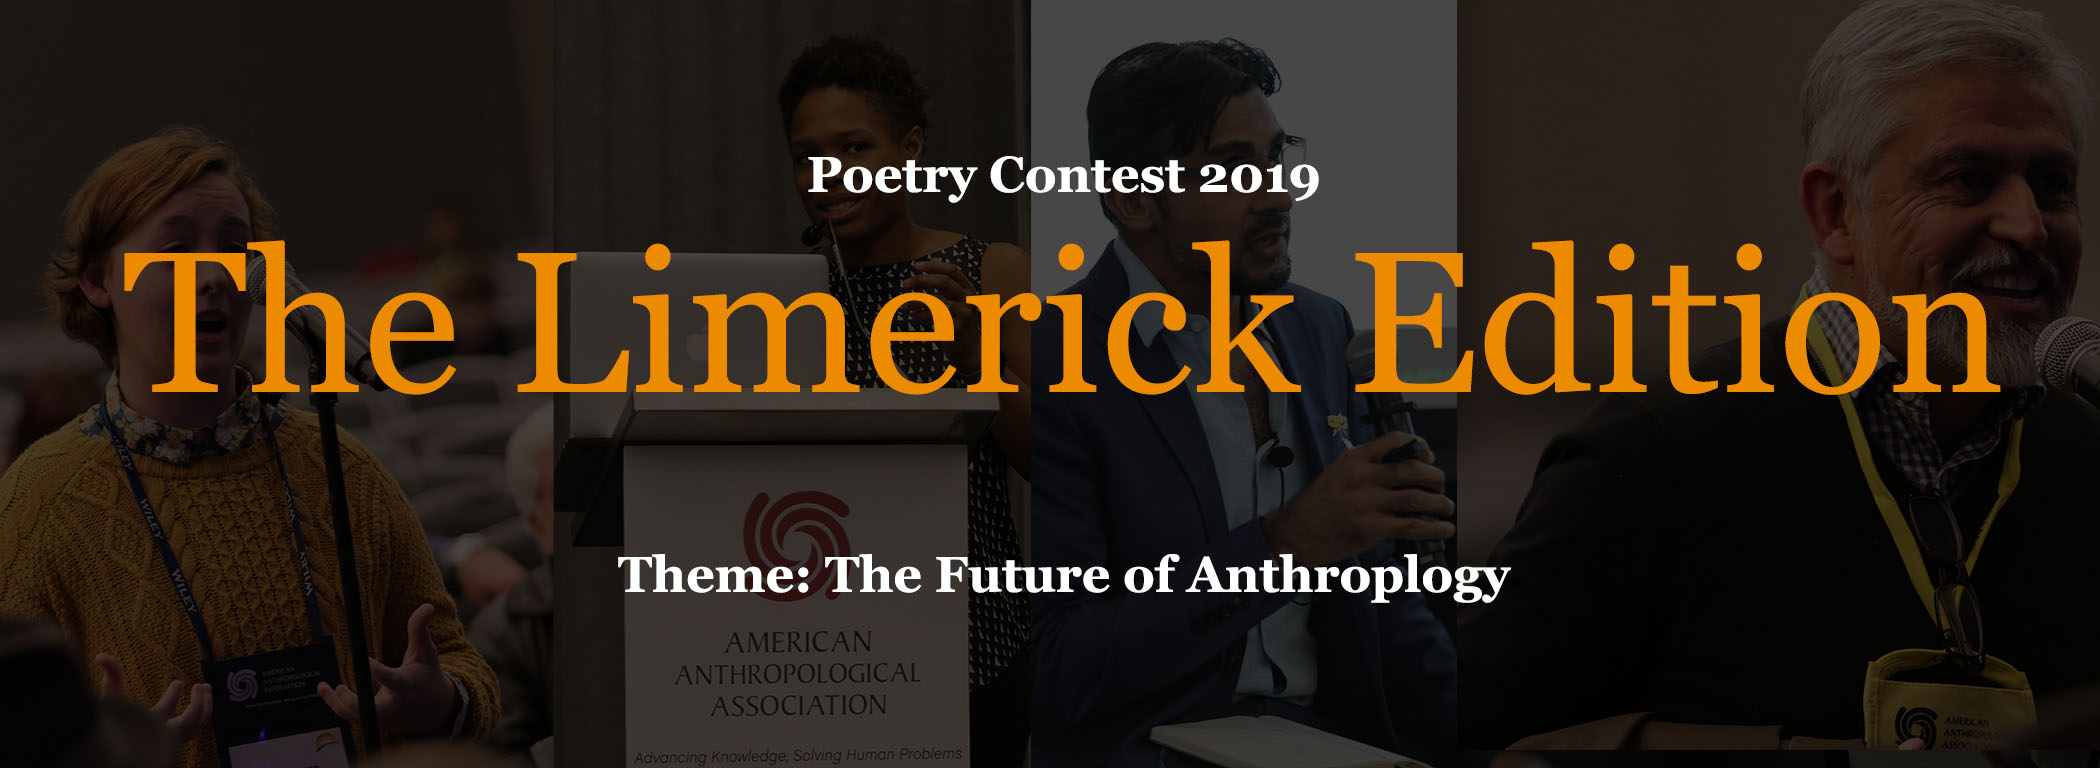 Poetry  Contest Limerick Edition